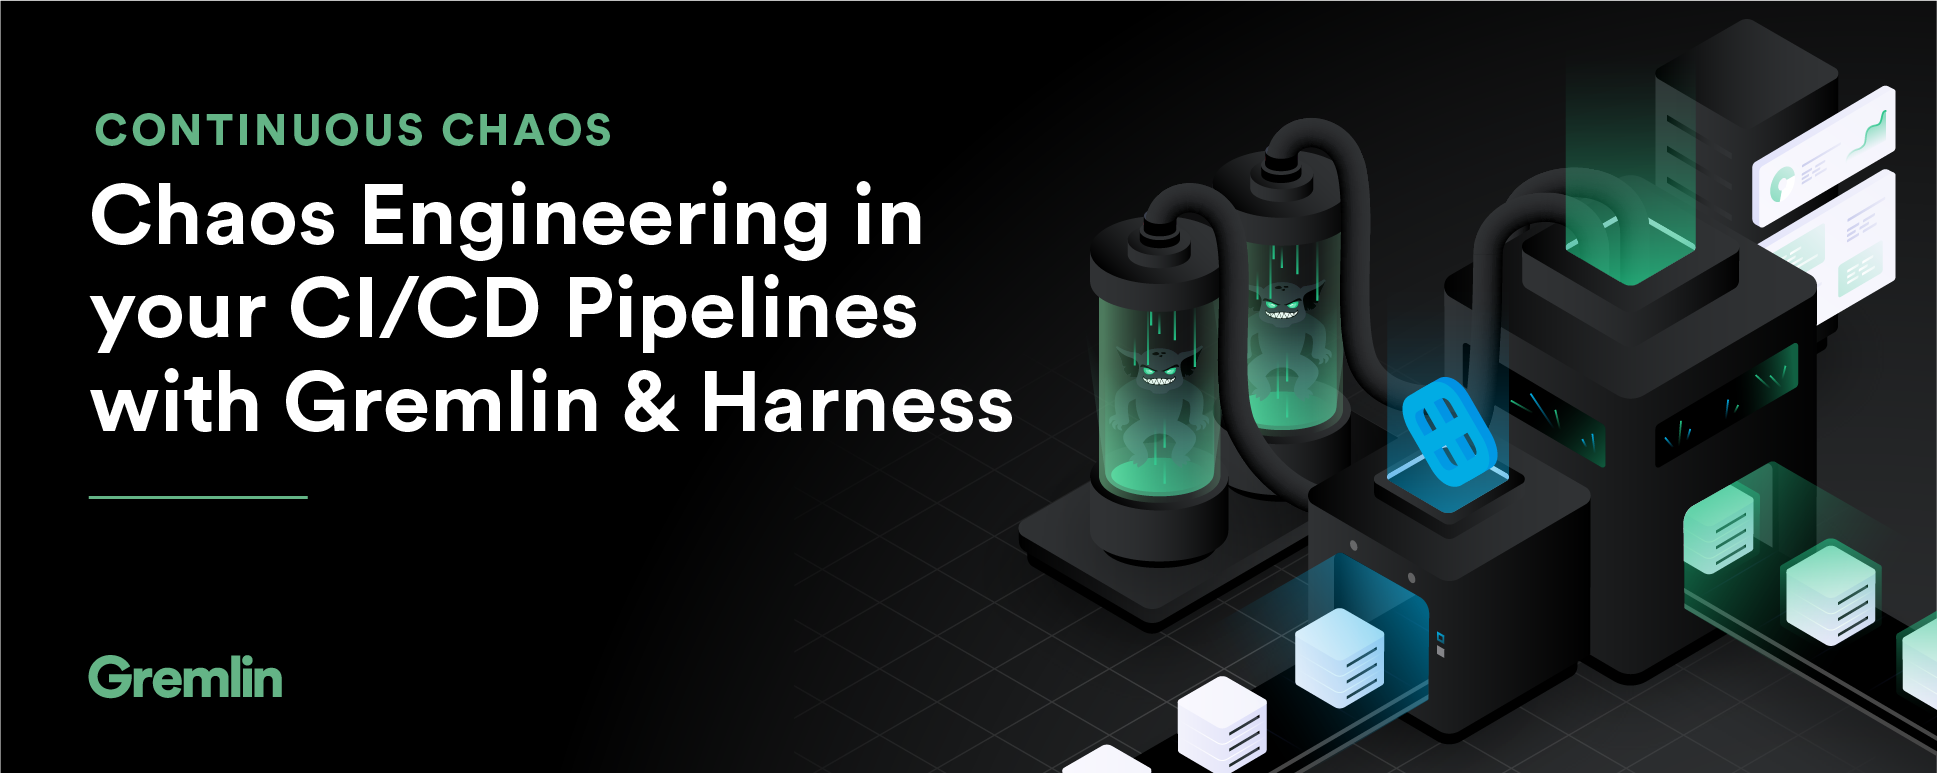 Continuous Chaos Engineering in your CI/CD Pipelines with Gremlin and Harness